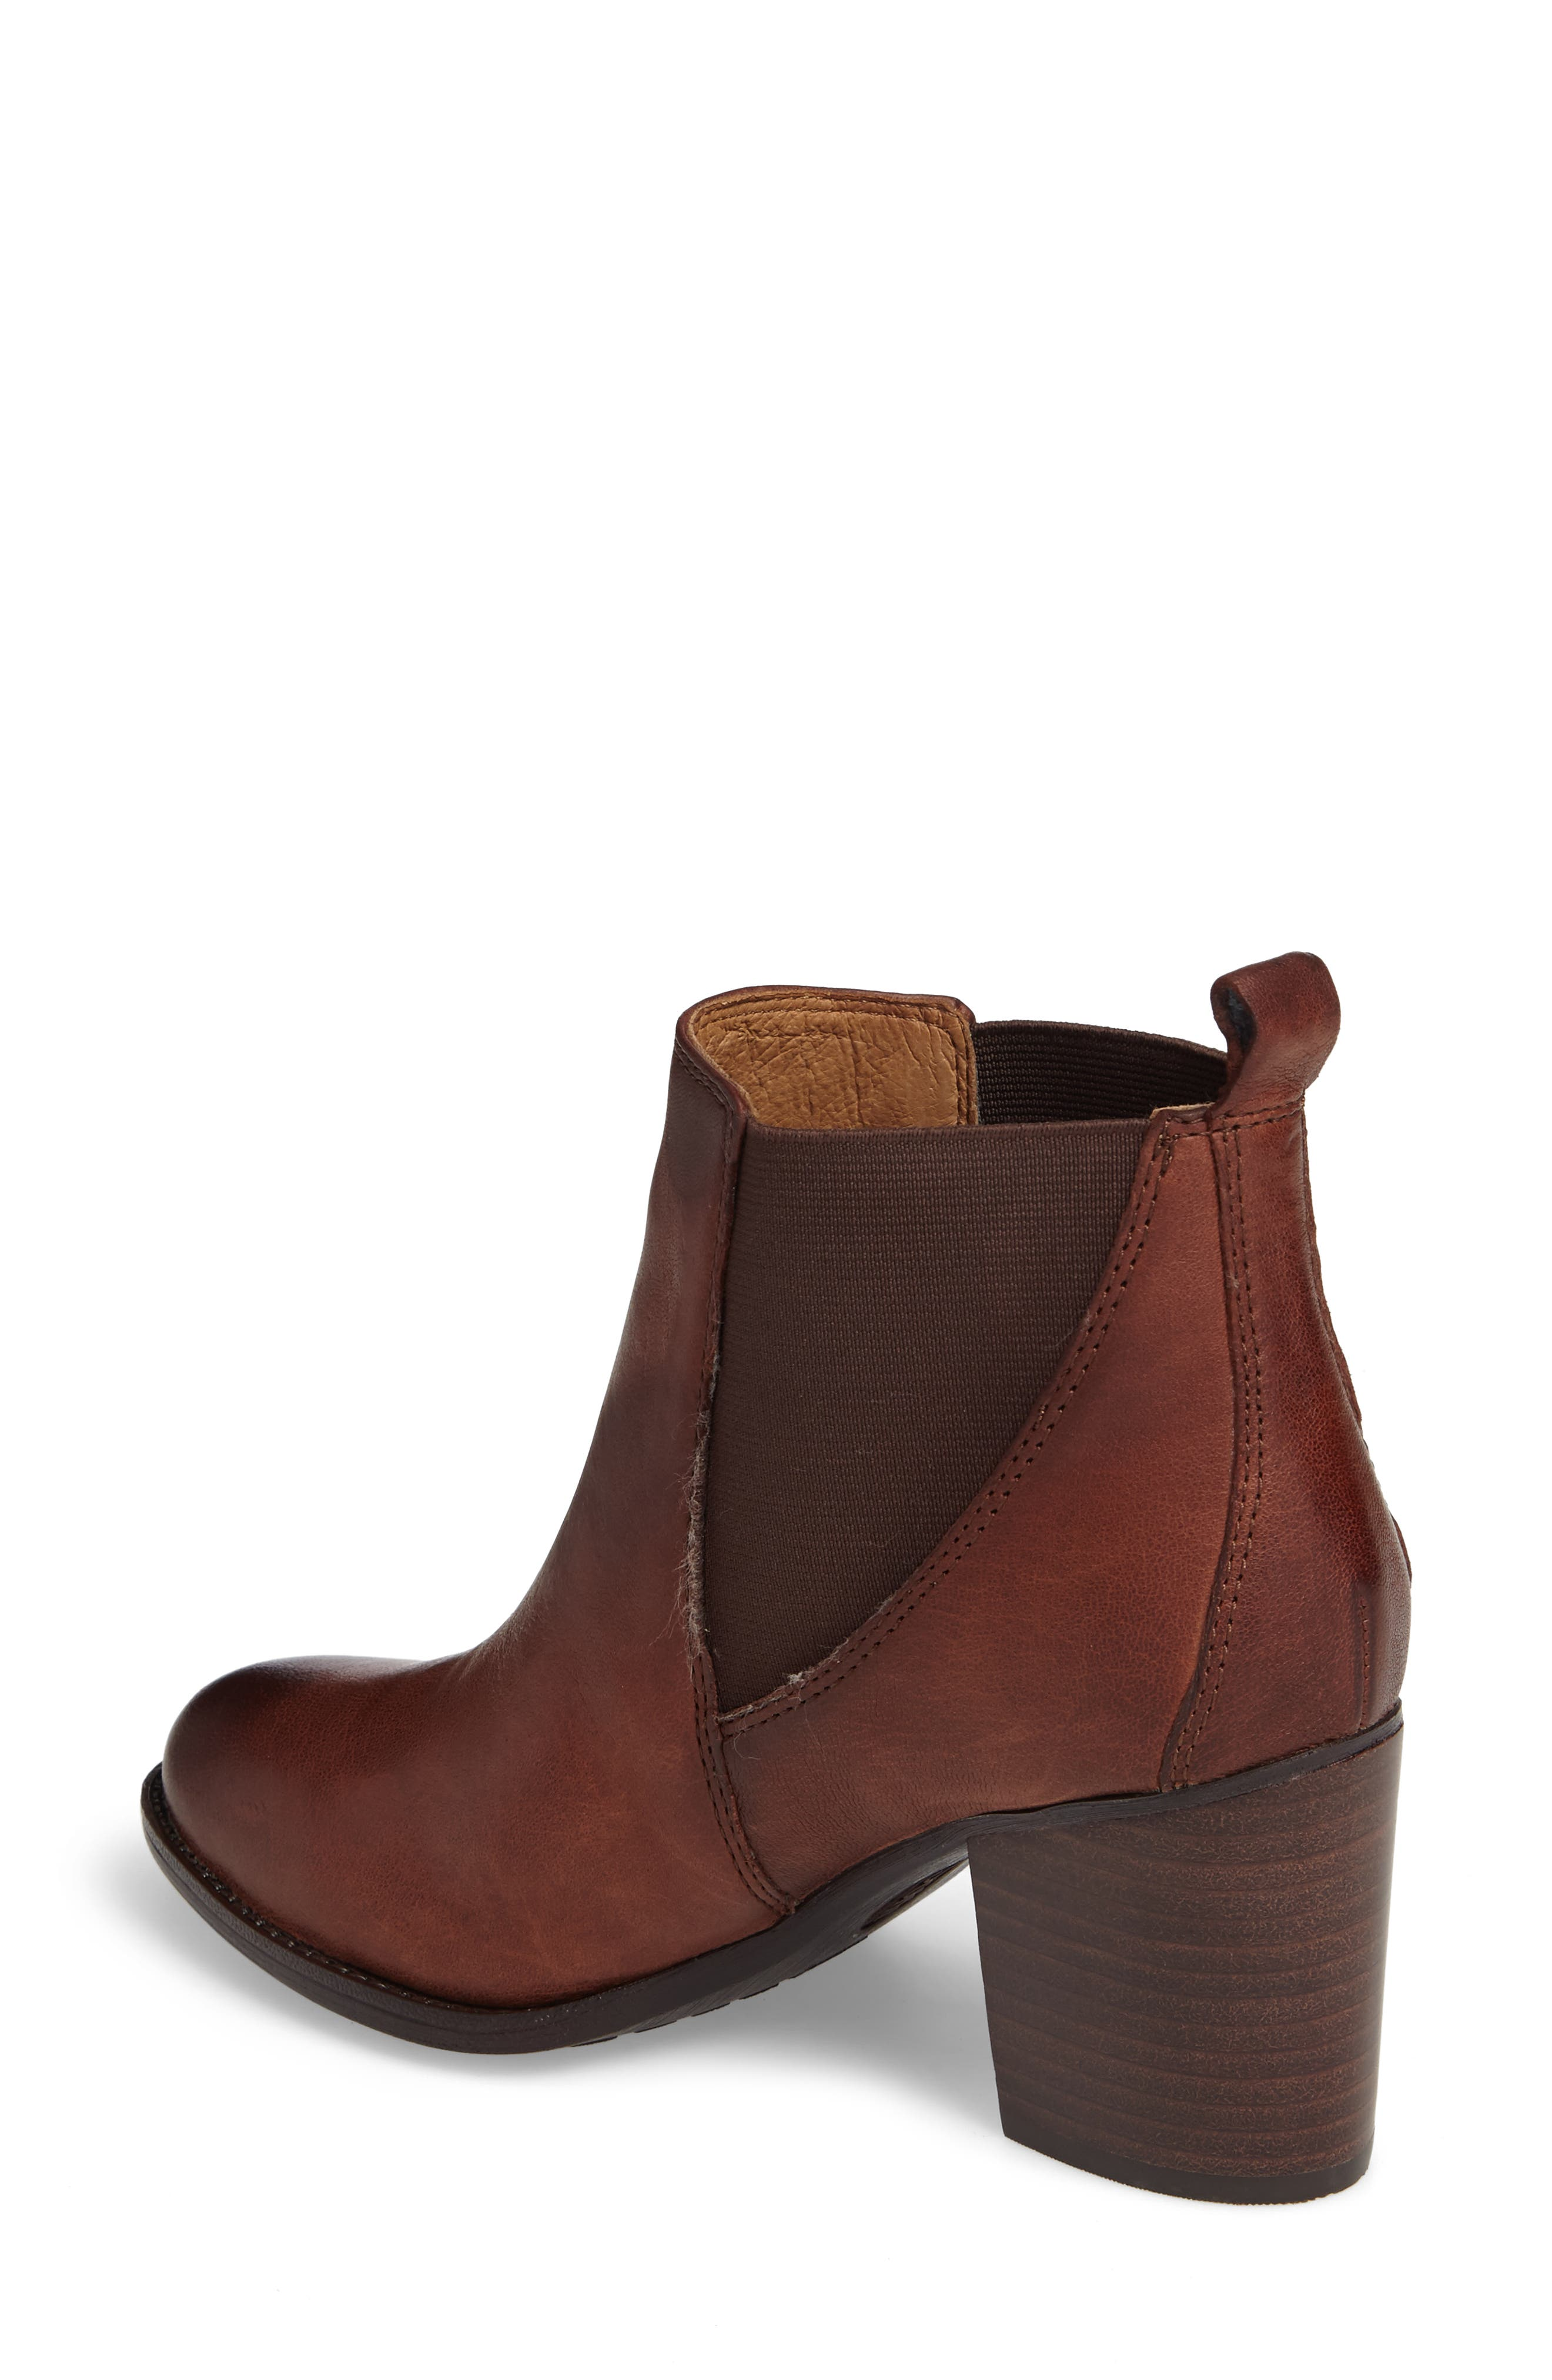 Welling Bootie,                             Alternate thumbnail 2, color,                             Caffe Leather